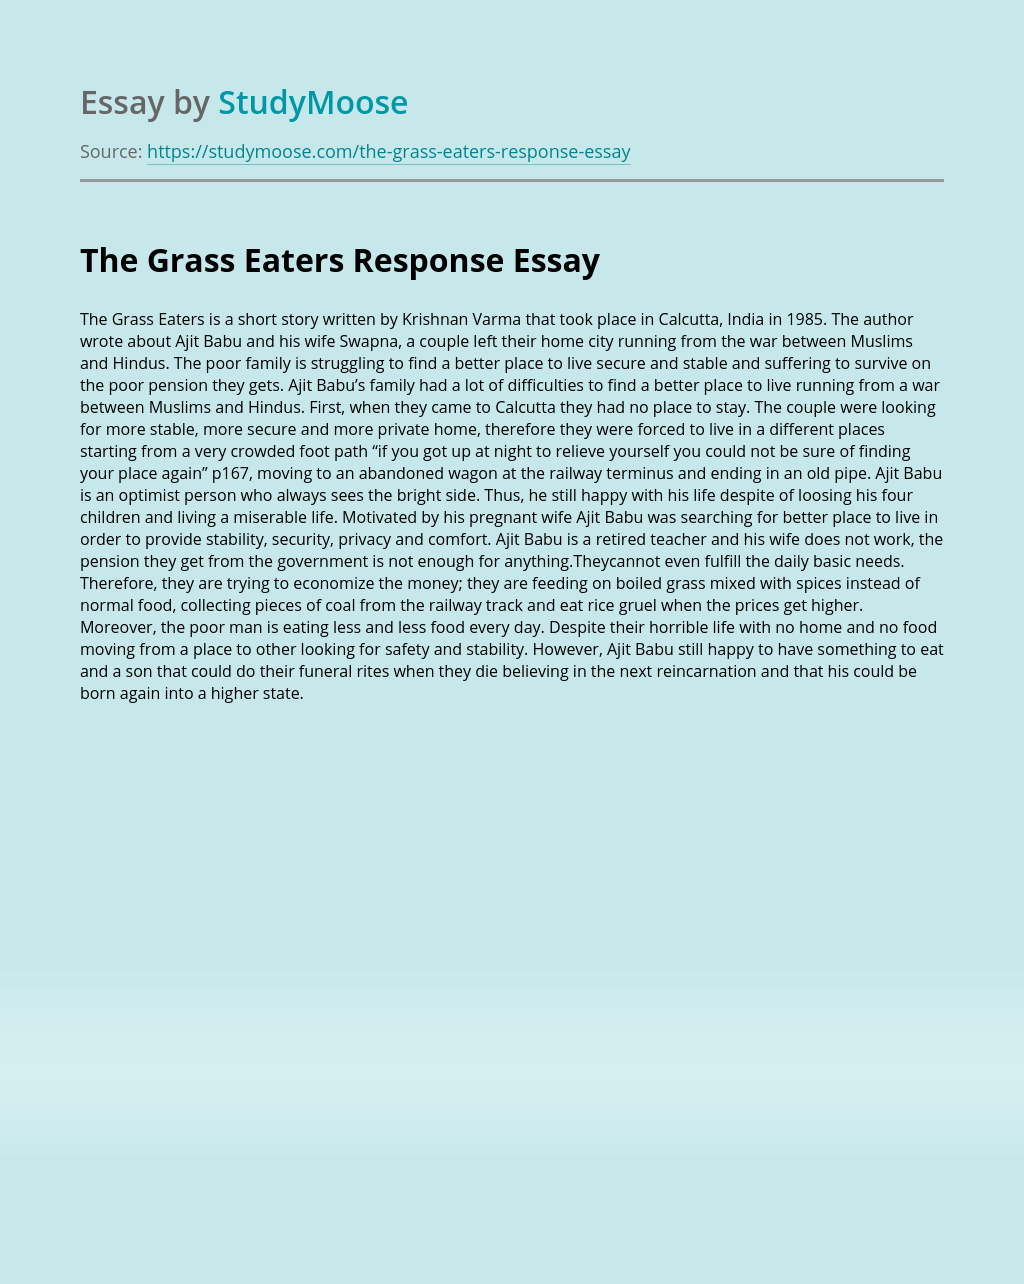 The Grass Eaters Response